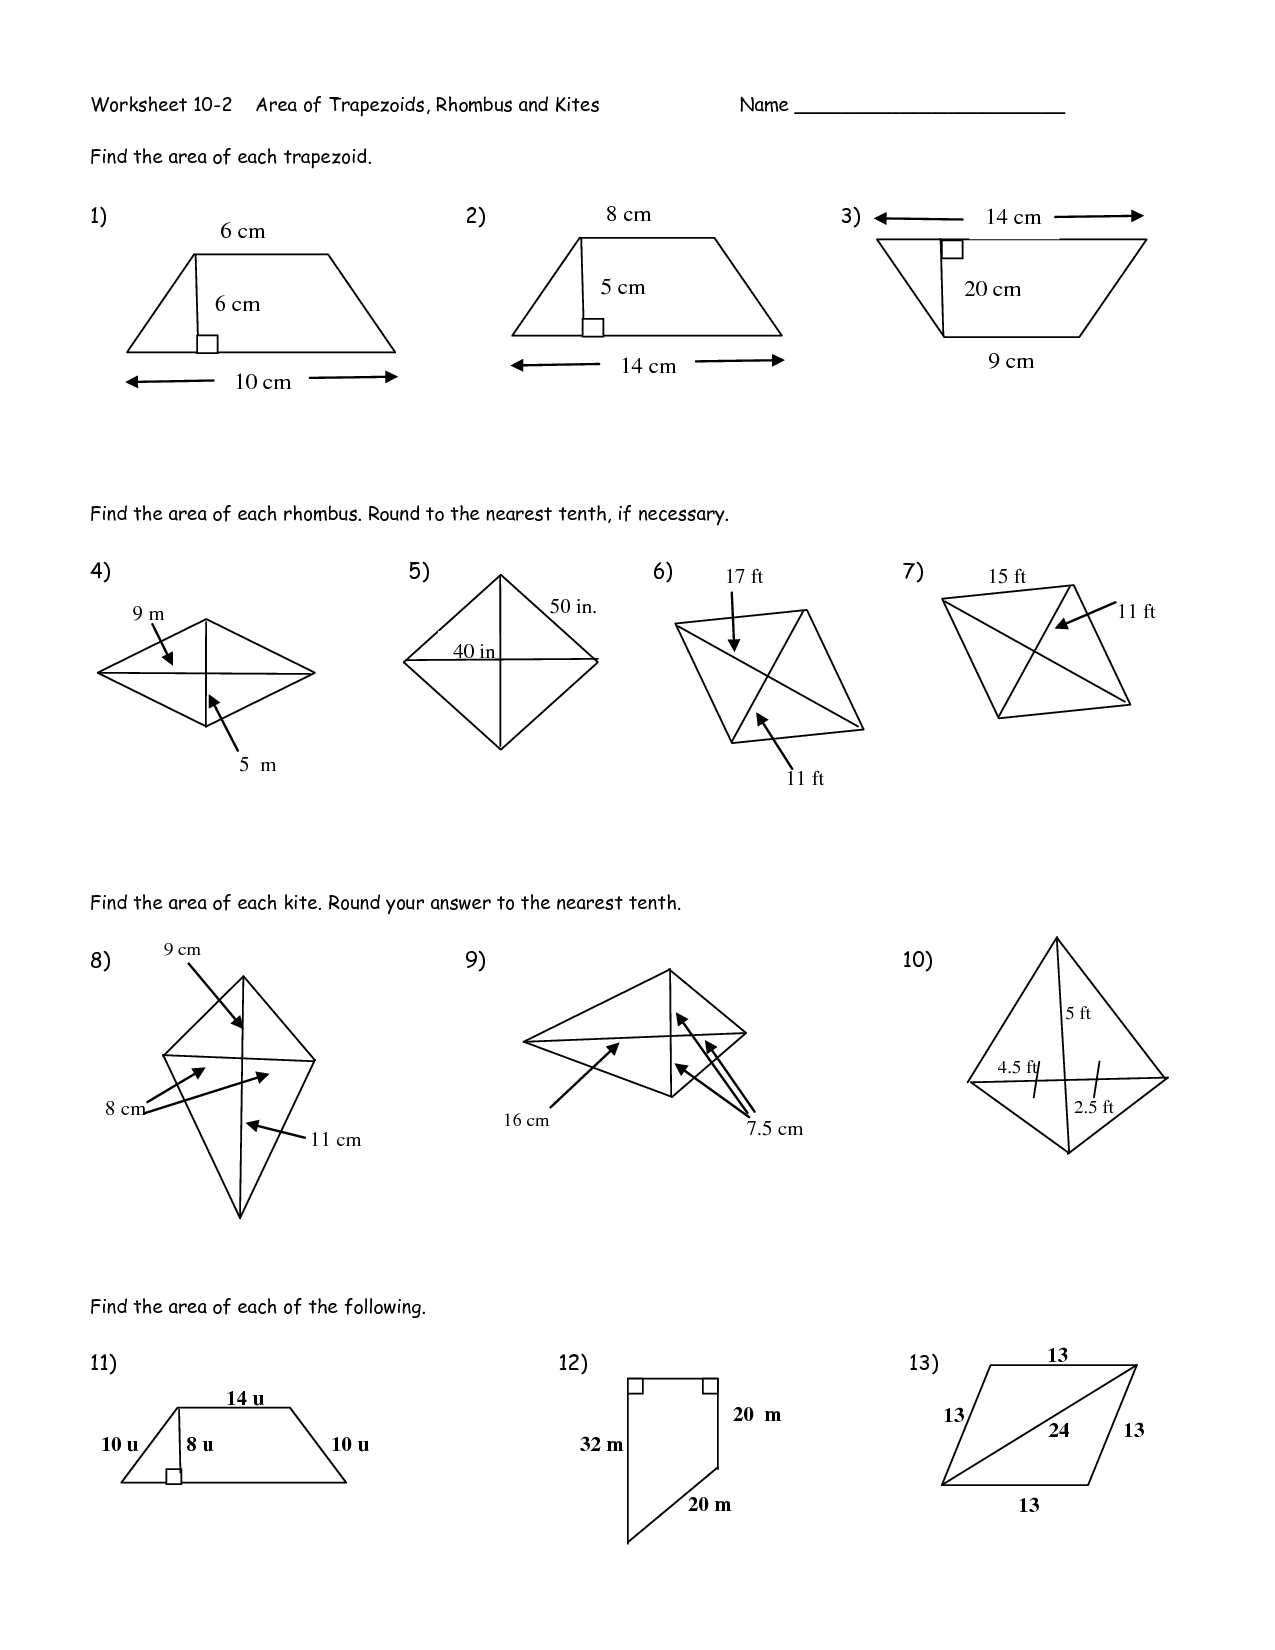 Kite Area Worksheet